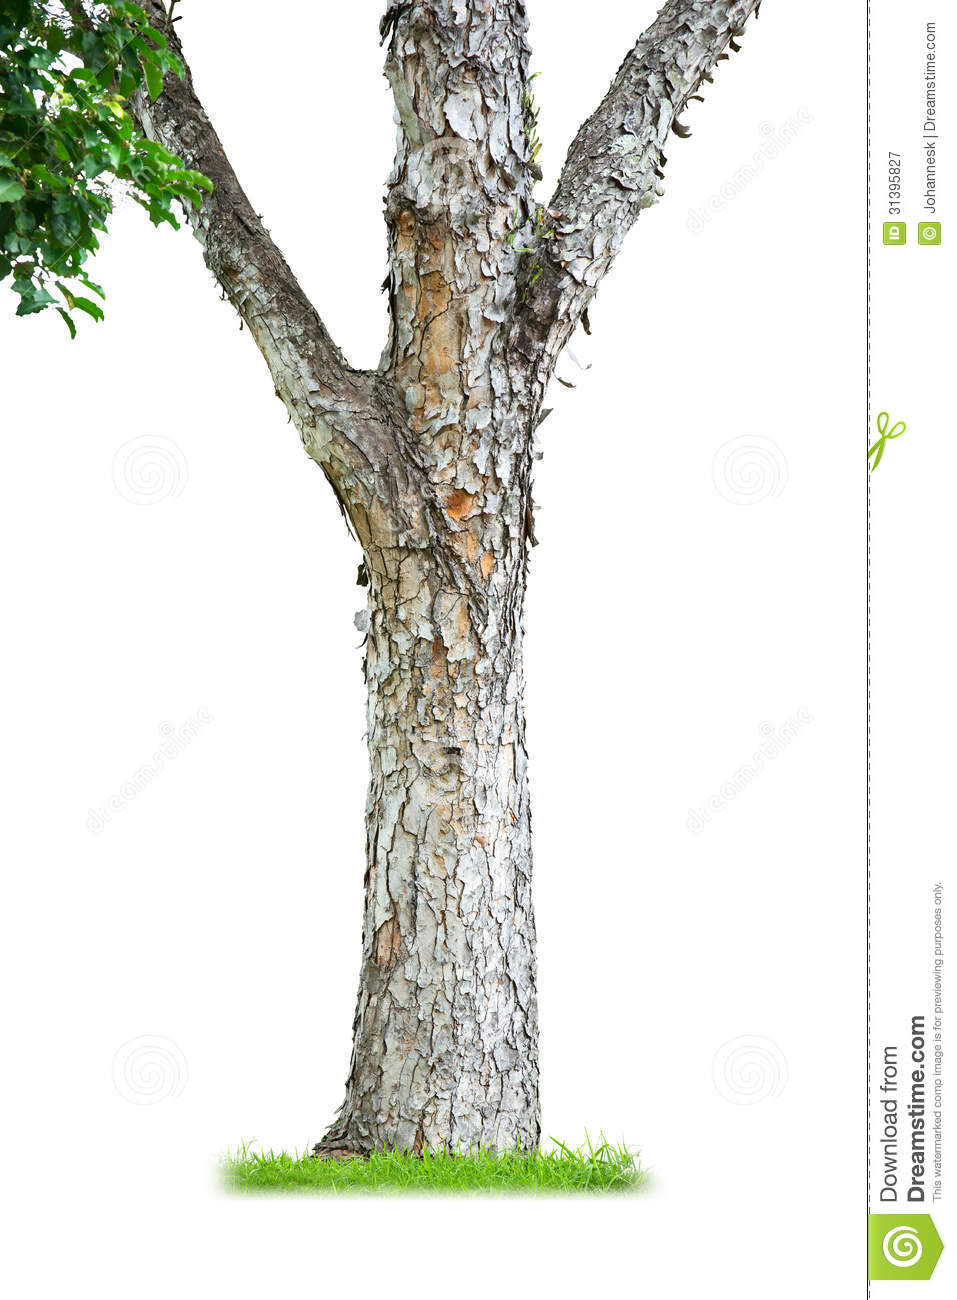 Tree Trunk Royalty Free Stock Photography - Image: 31395827